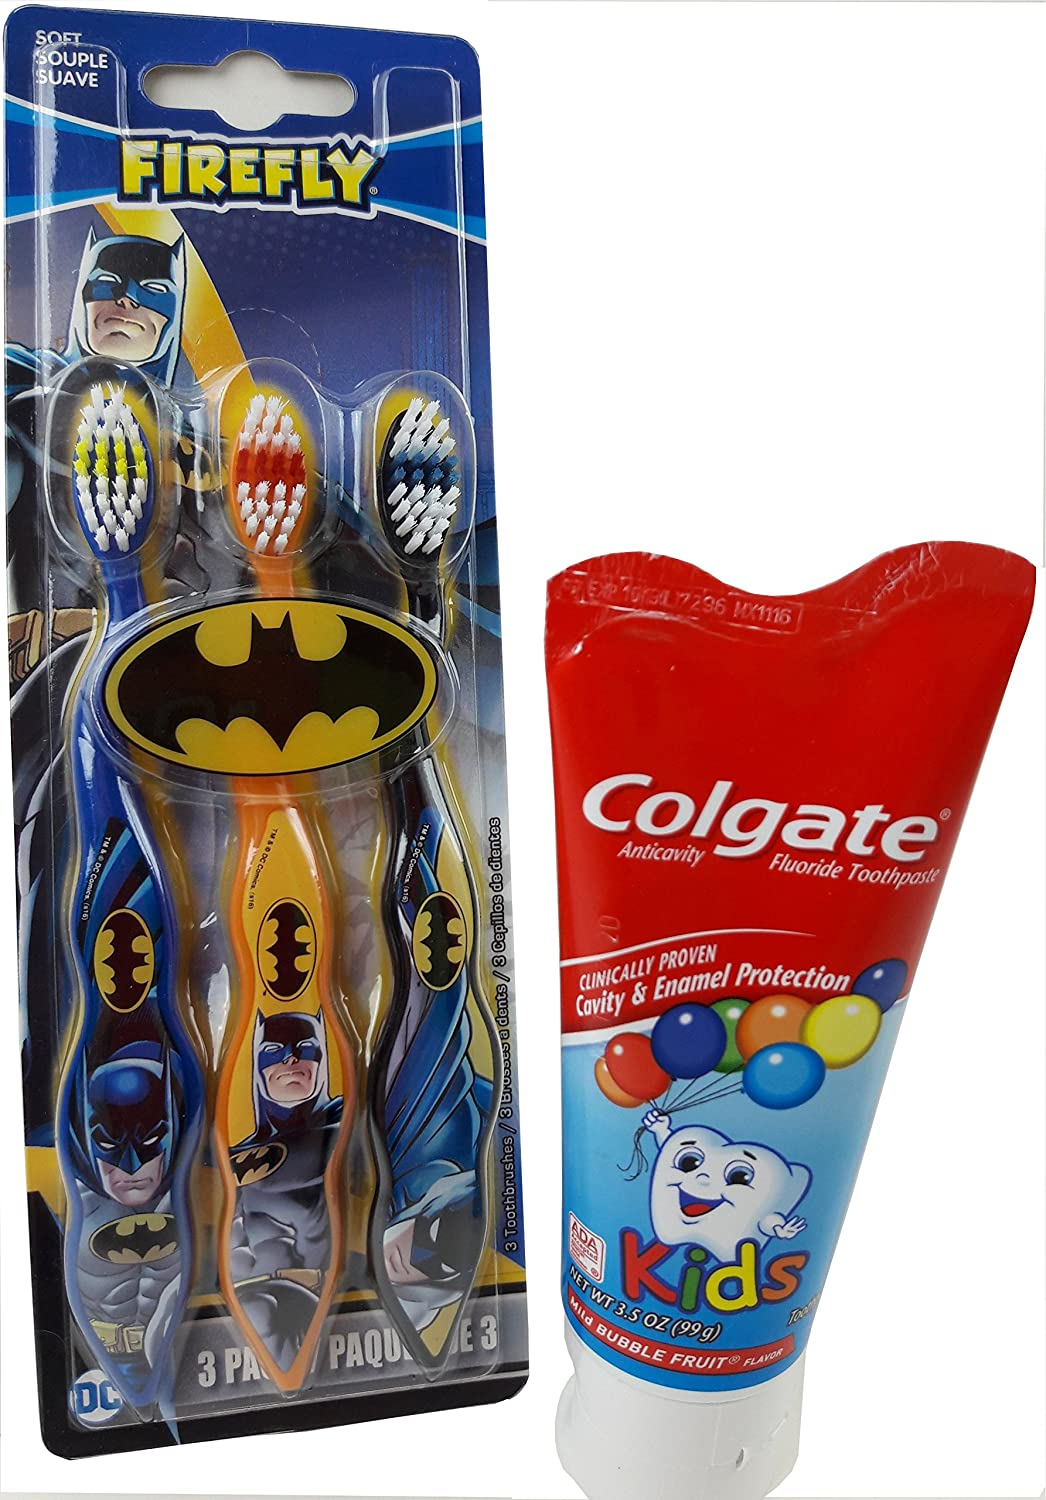 Amazon.com: Kids Toothbrushes Batman Theme 3-Pack, With Colgate 3.5 oz Toothpaste: Beauty